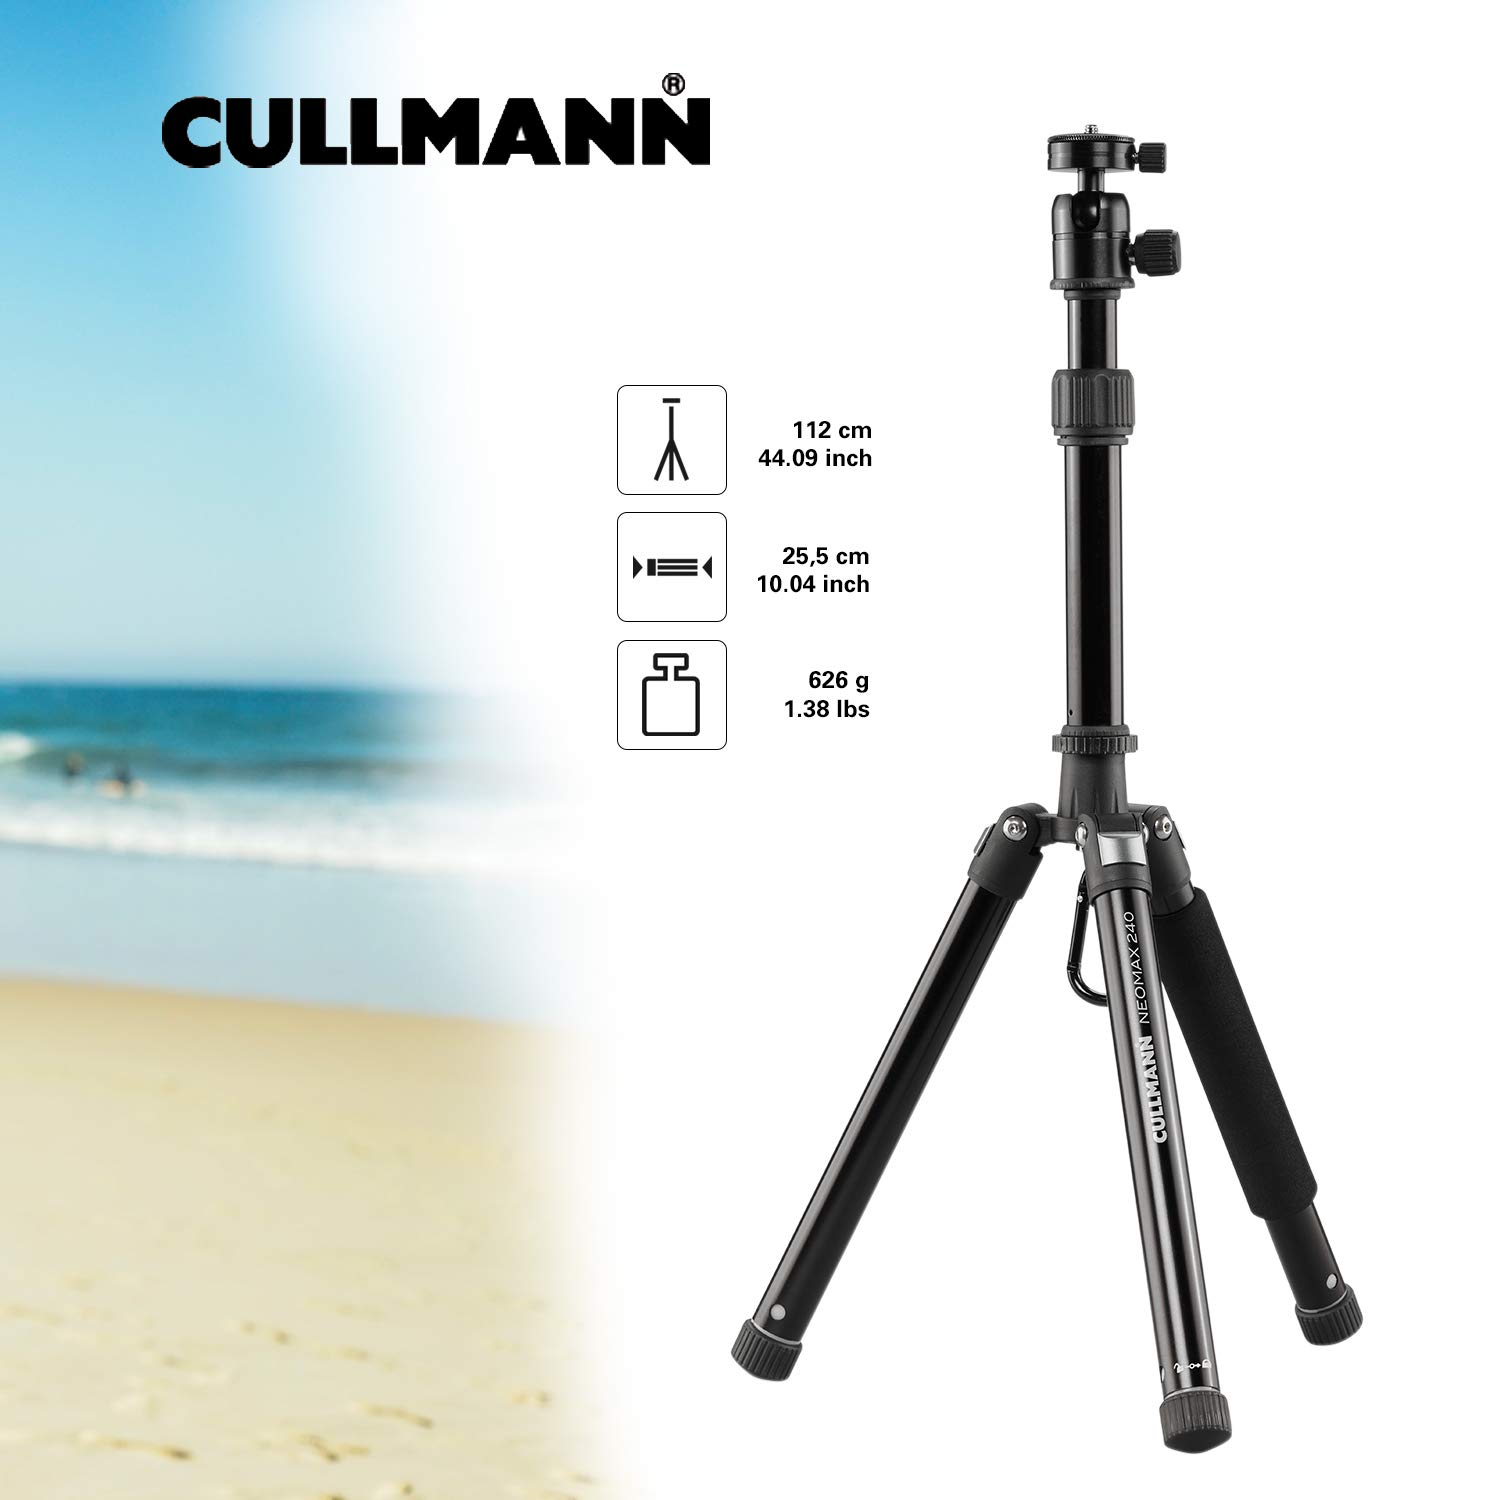 Cullmann 52524 NEOMAX 240 Light Travel Tripod with Telescopic Extension for Camera - Black by Cullmann